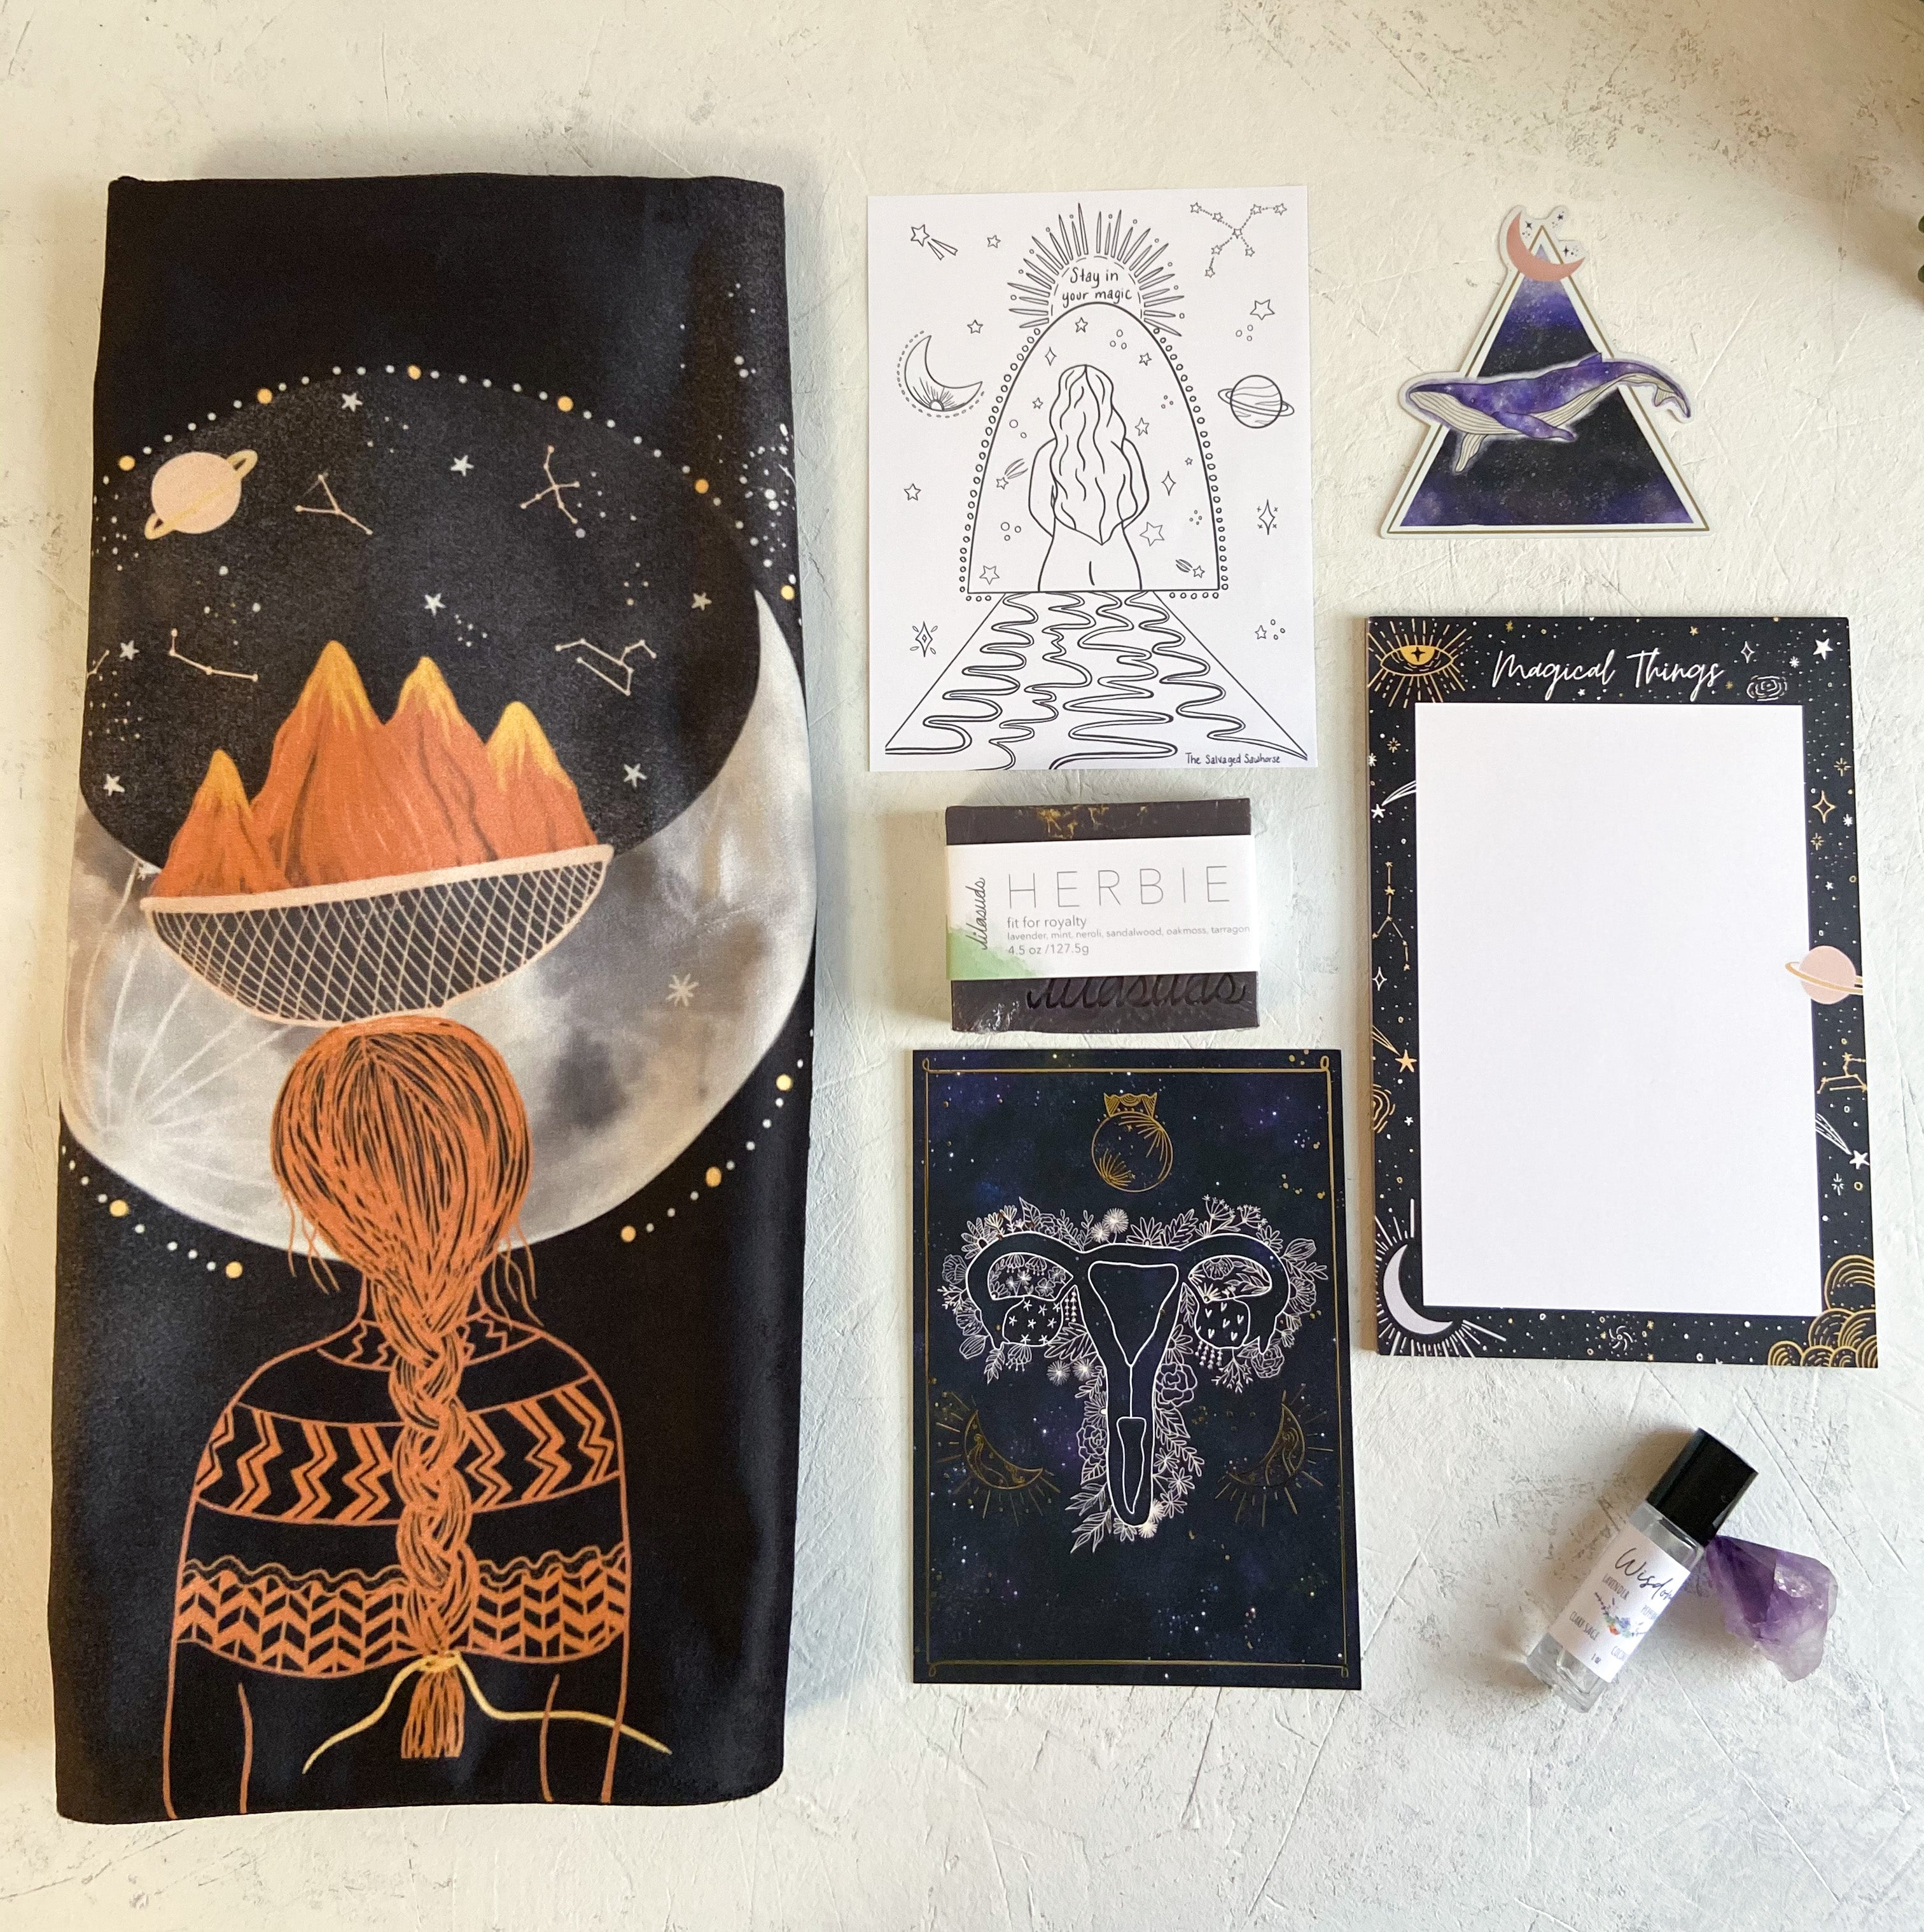 La Luna Box. A gift box full of celestial and cosmic inspired items to reconnect with the magic all around us.